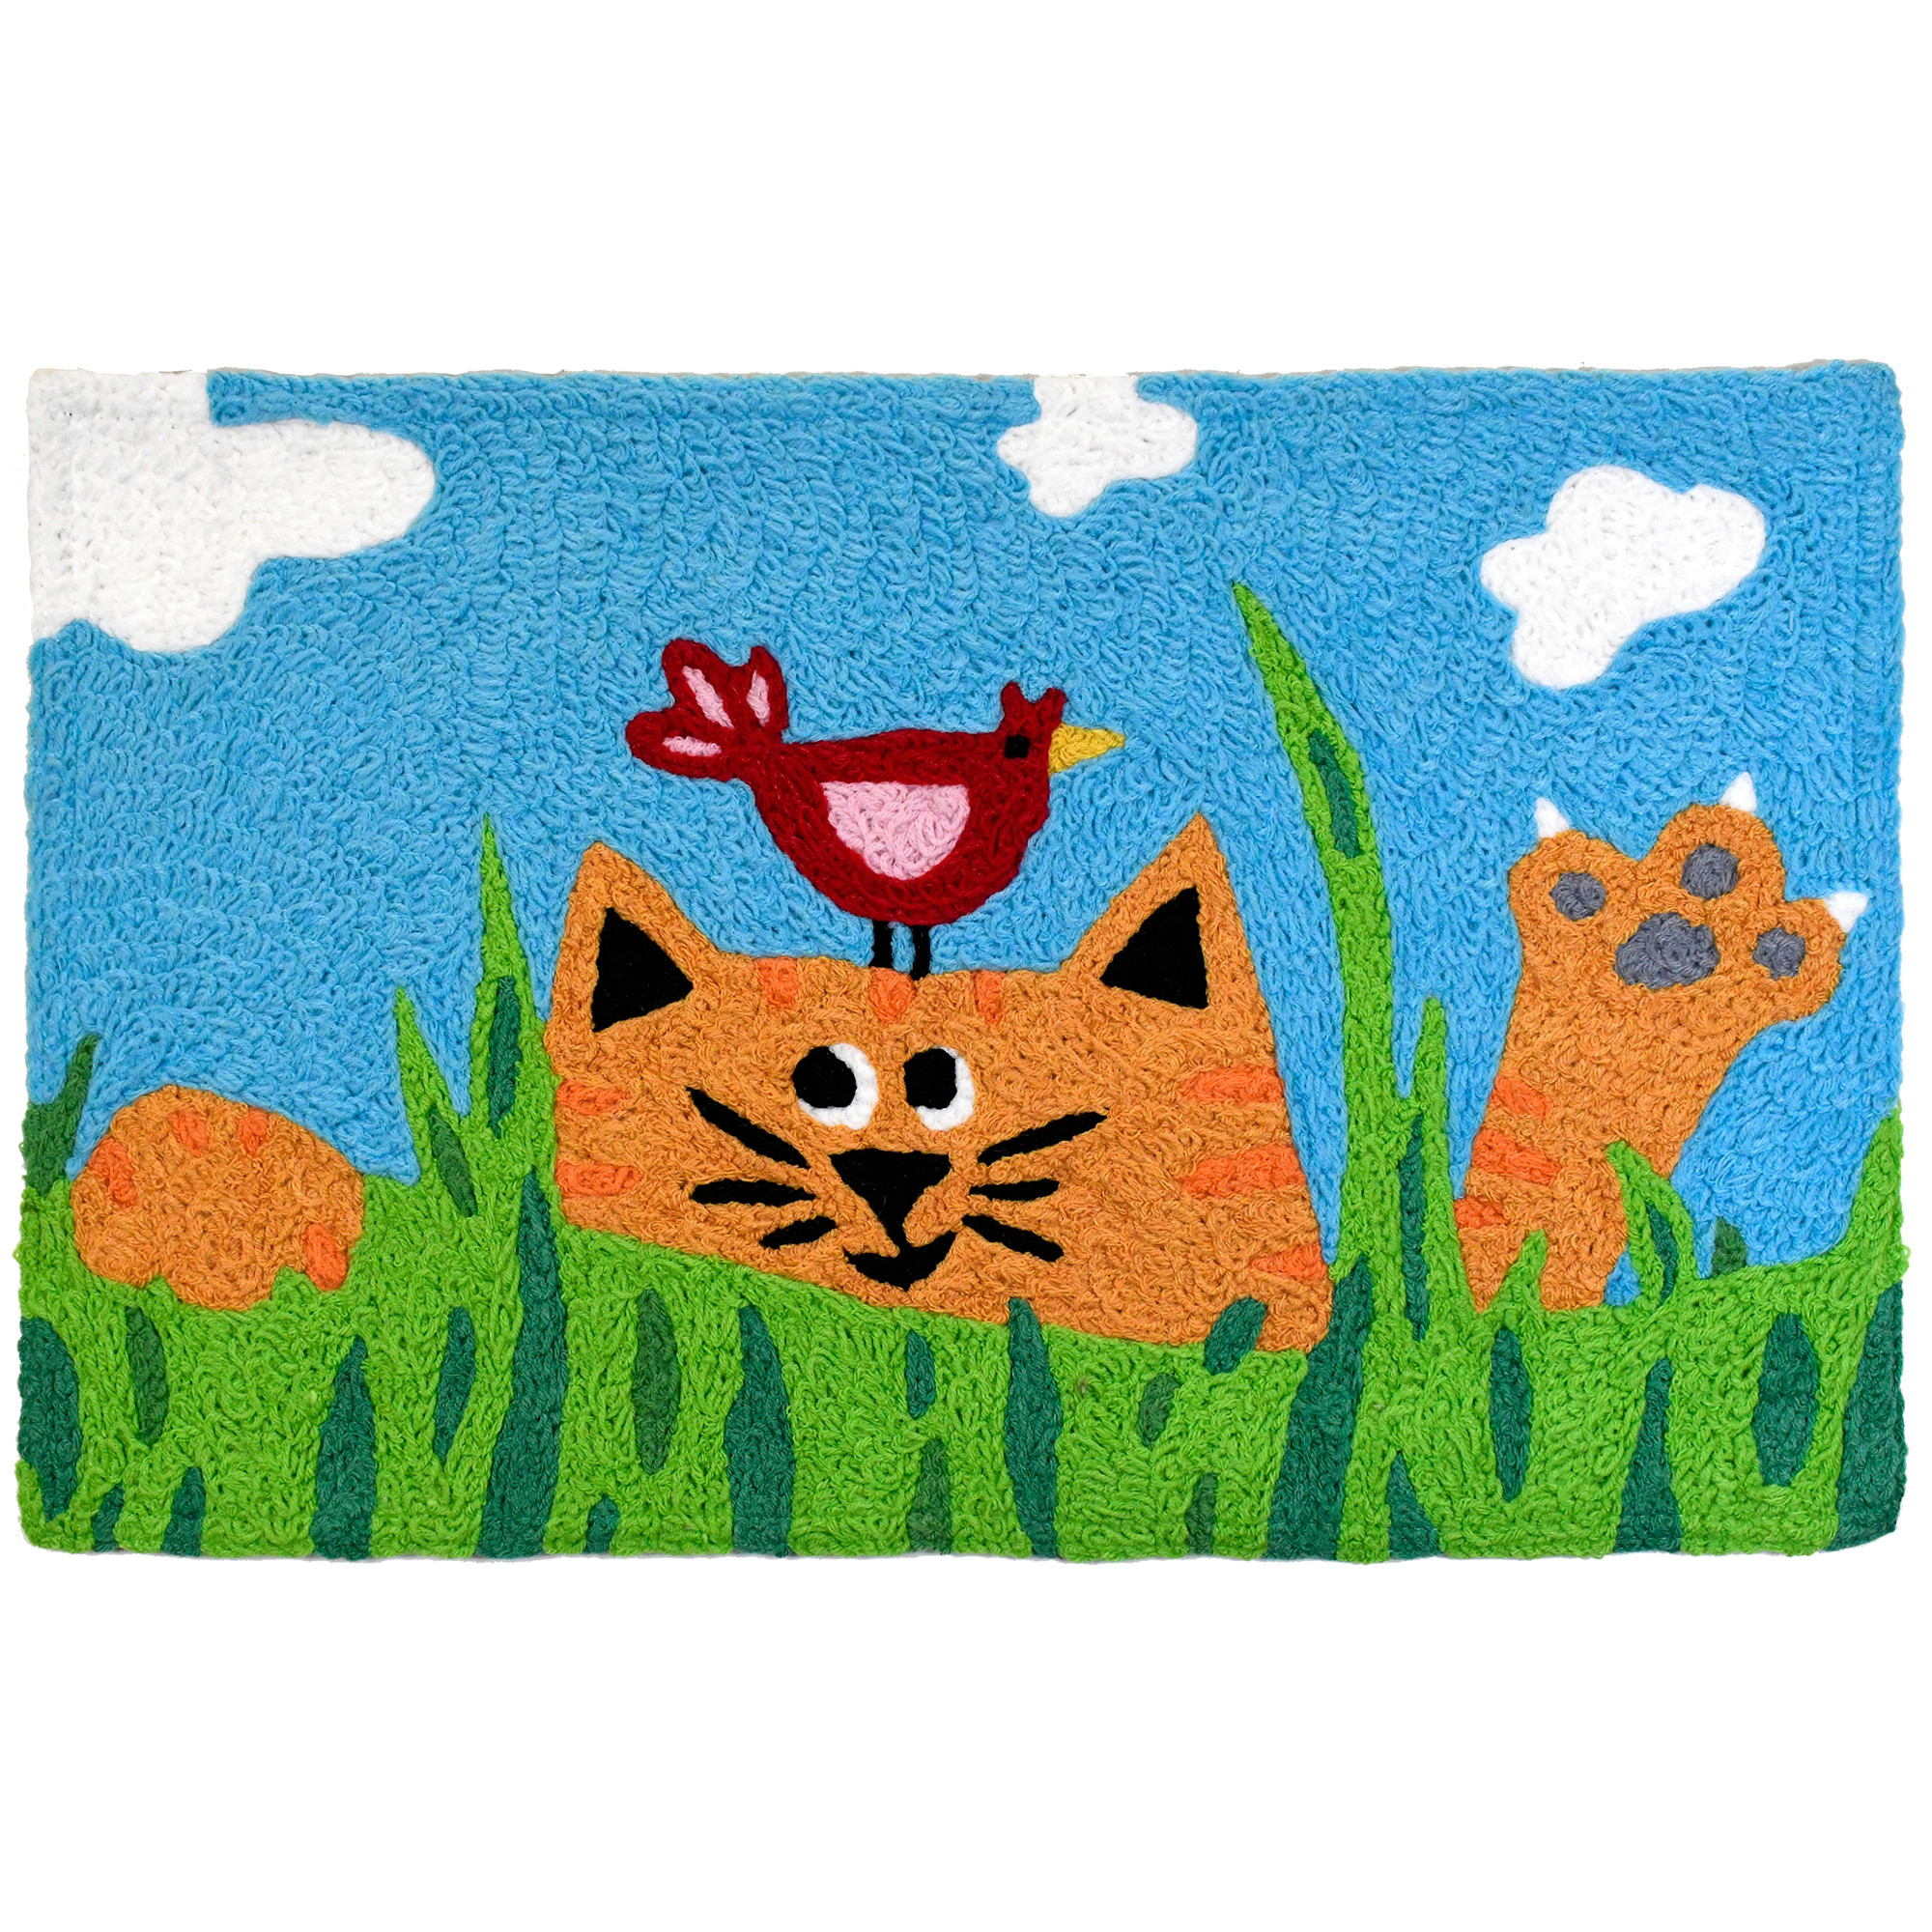 """""""An orange tabby cat romps in the vibrant grass while playing with a feathered friend. Machine washable crafting makes this polyester accent rug by Jellybean®  an ideal addition to the pet lovers home. Indoor and outdoor design makes the play accessible to a variety of spaces."""""""